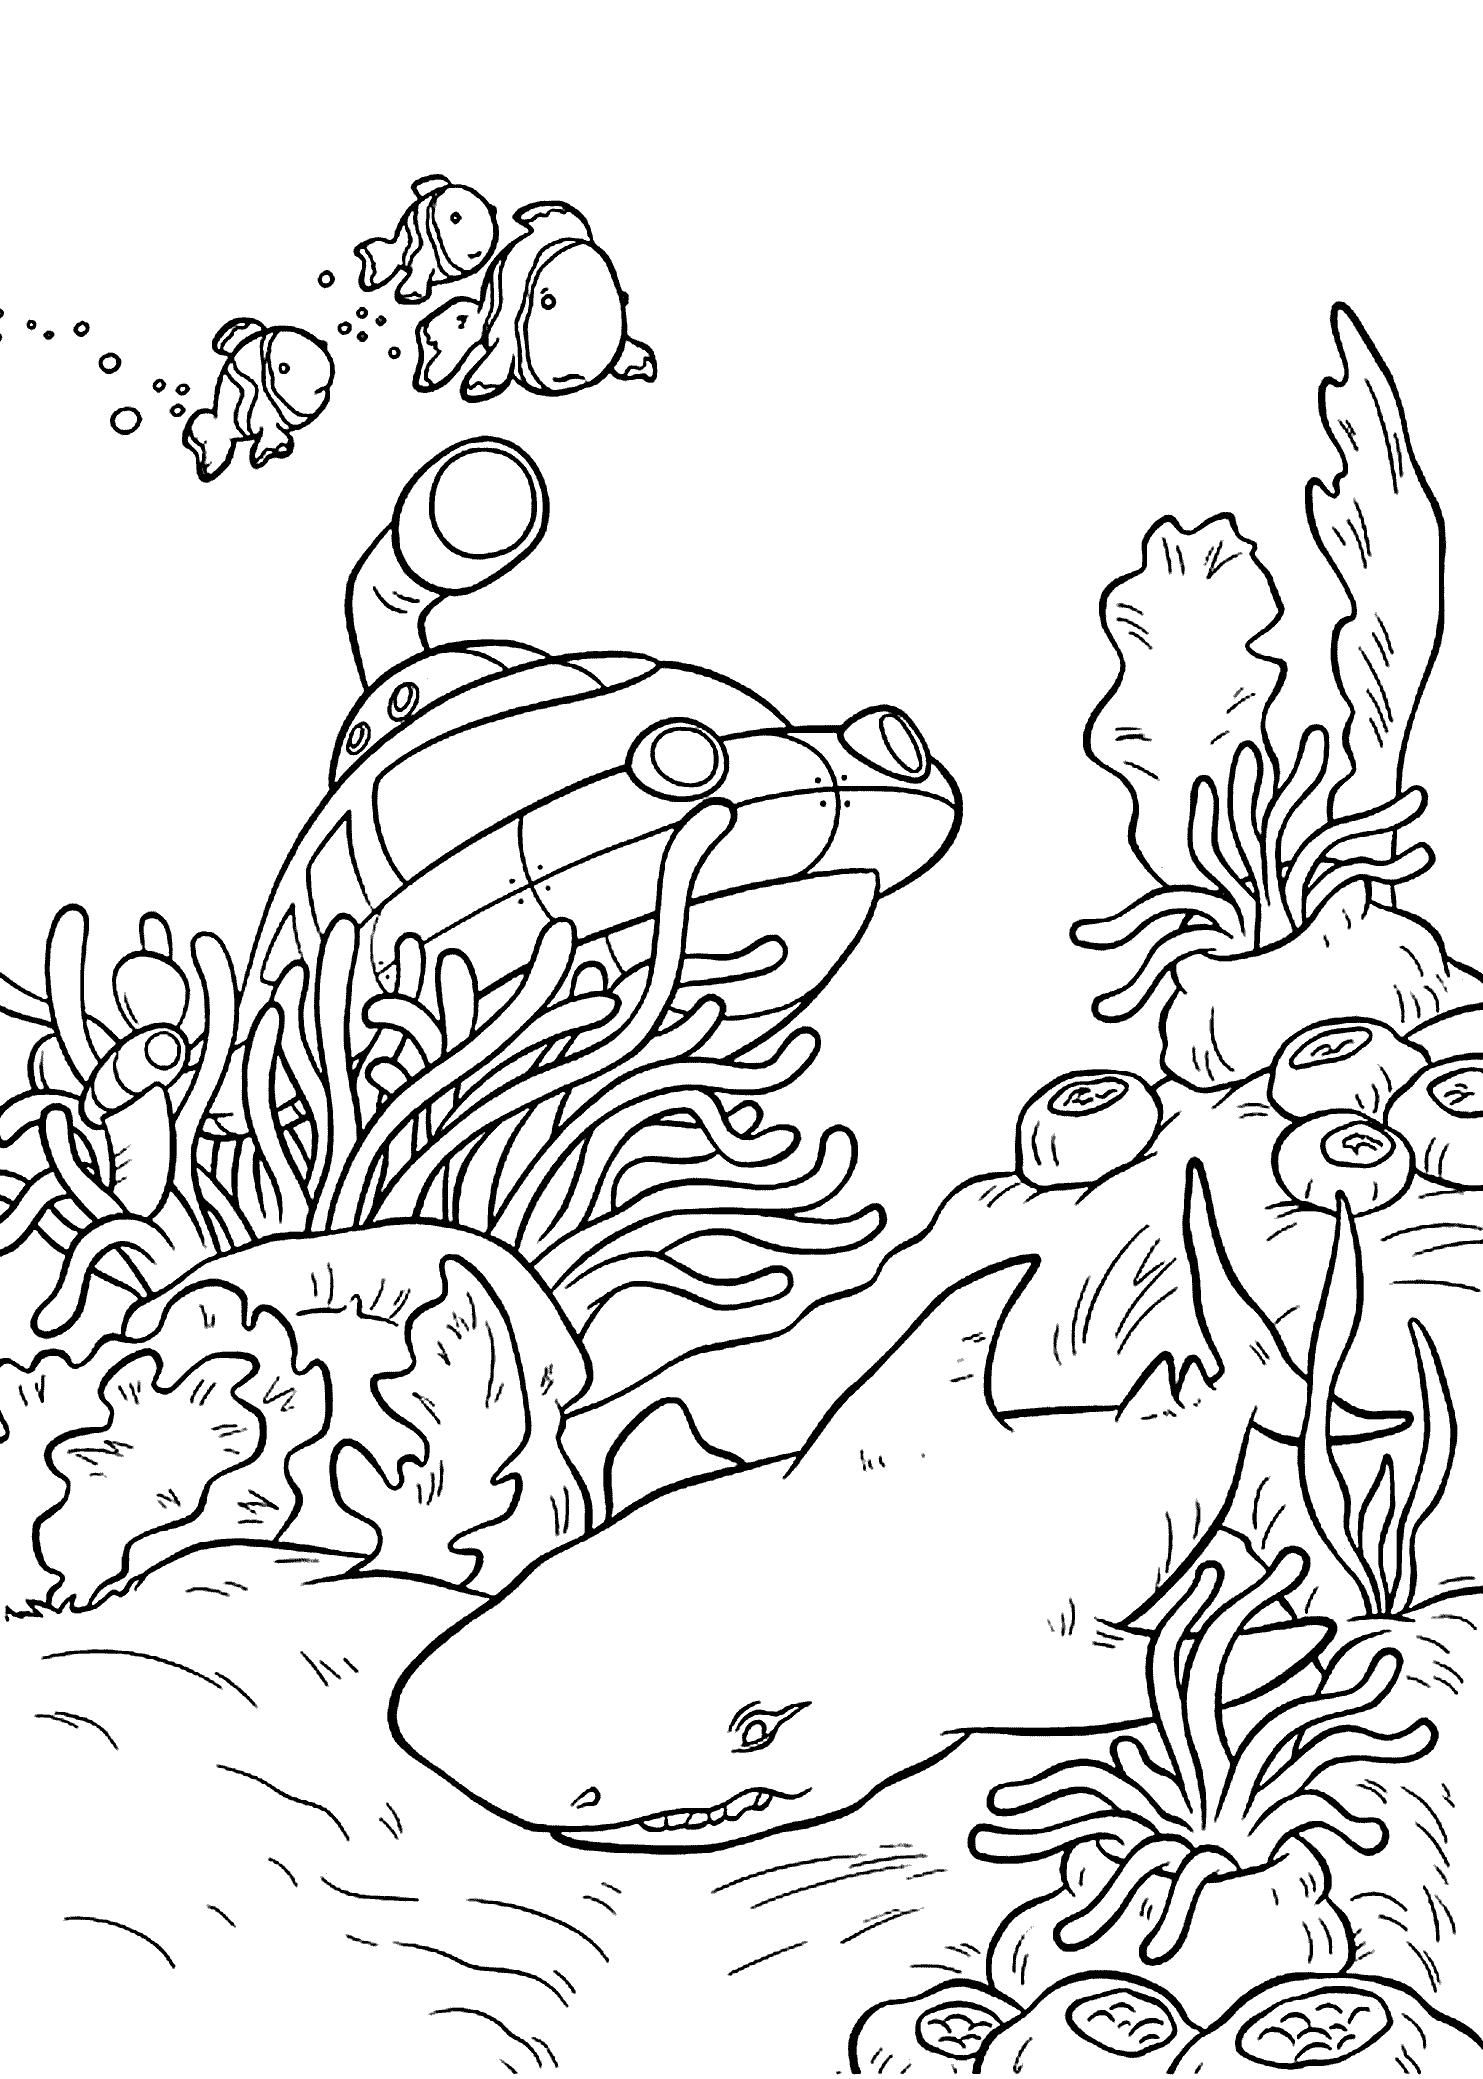 Awesome Coloring Page Underwater That You Must Know You